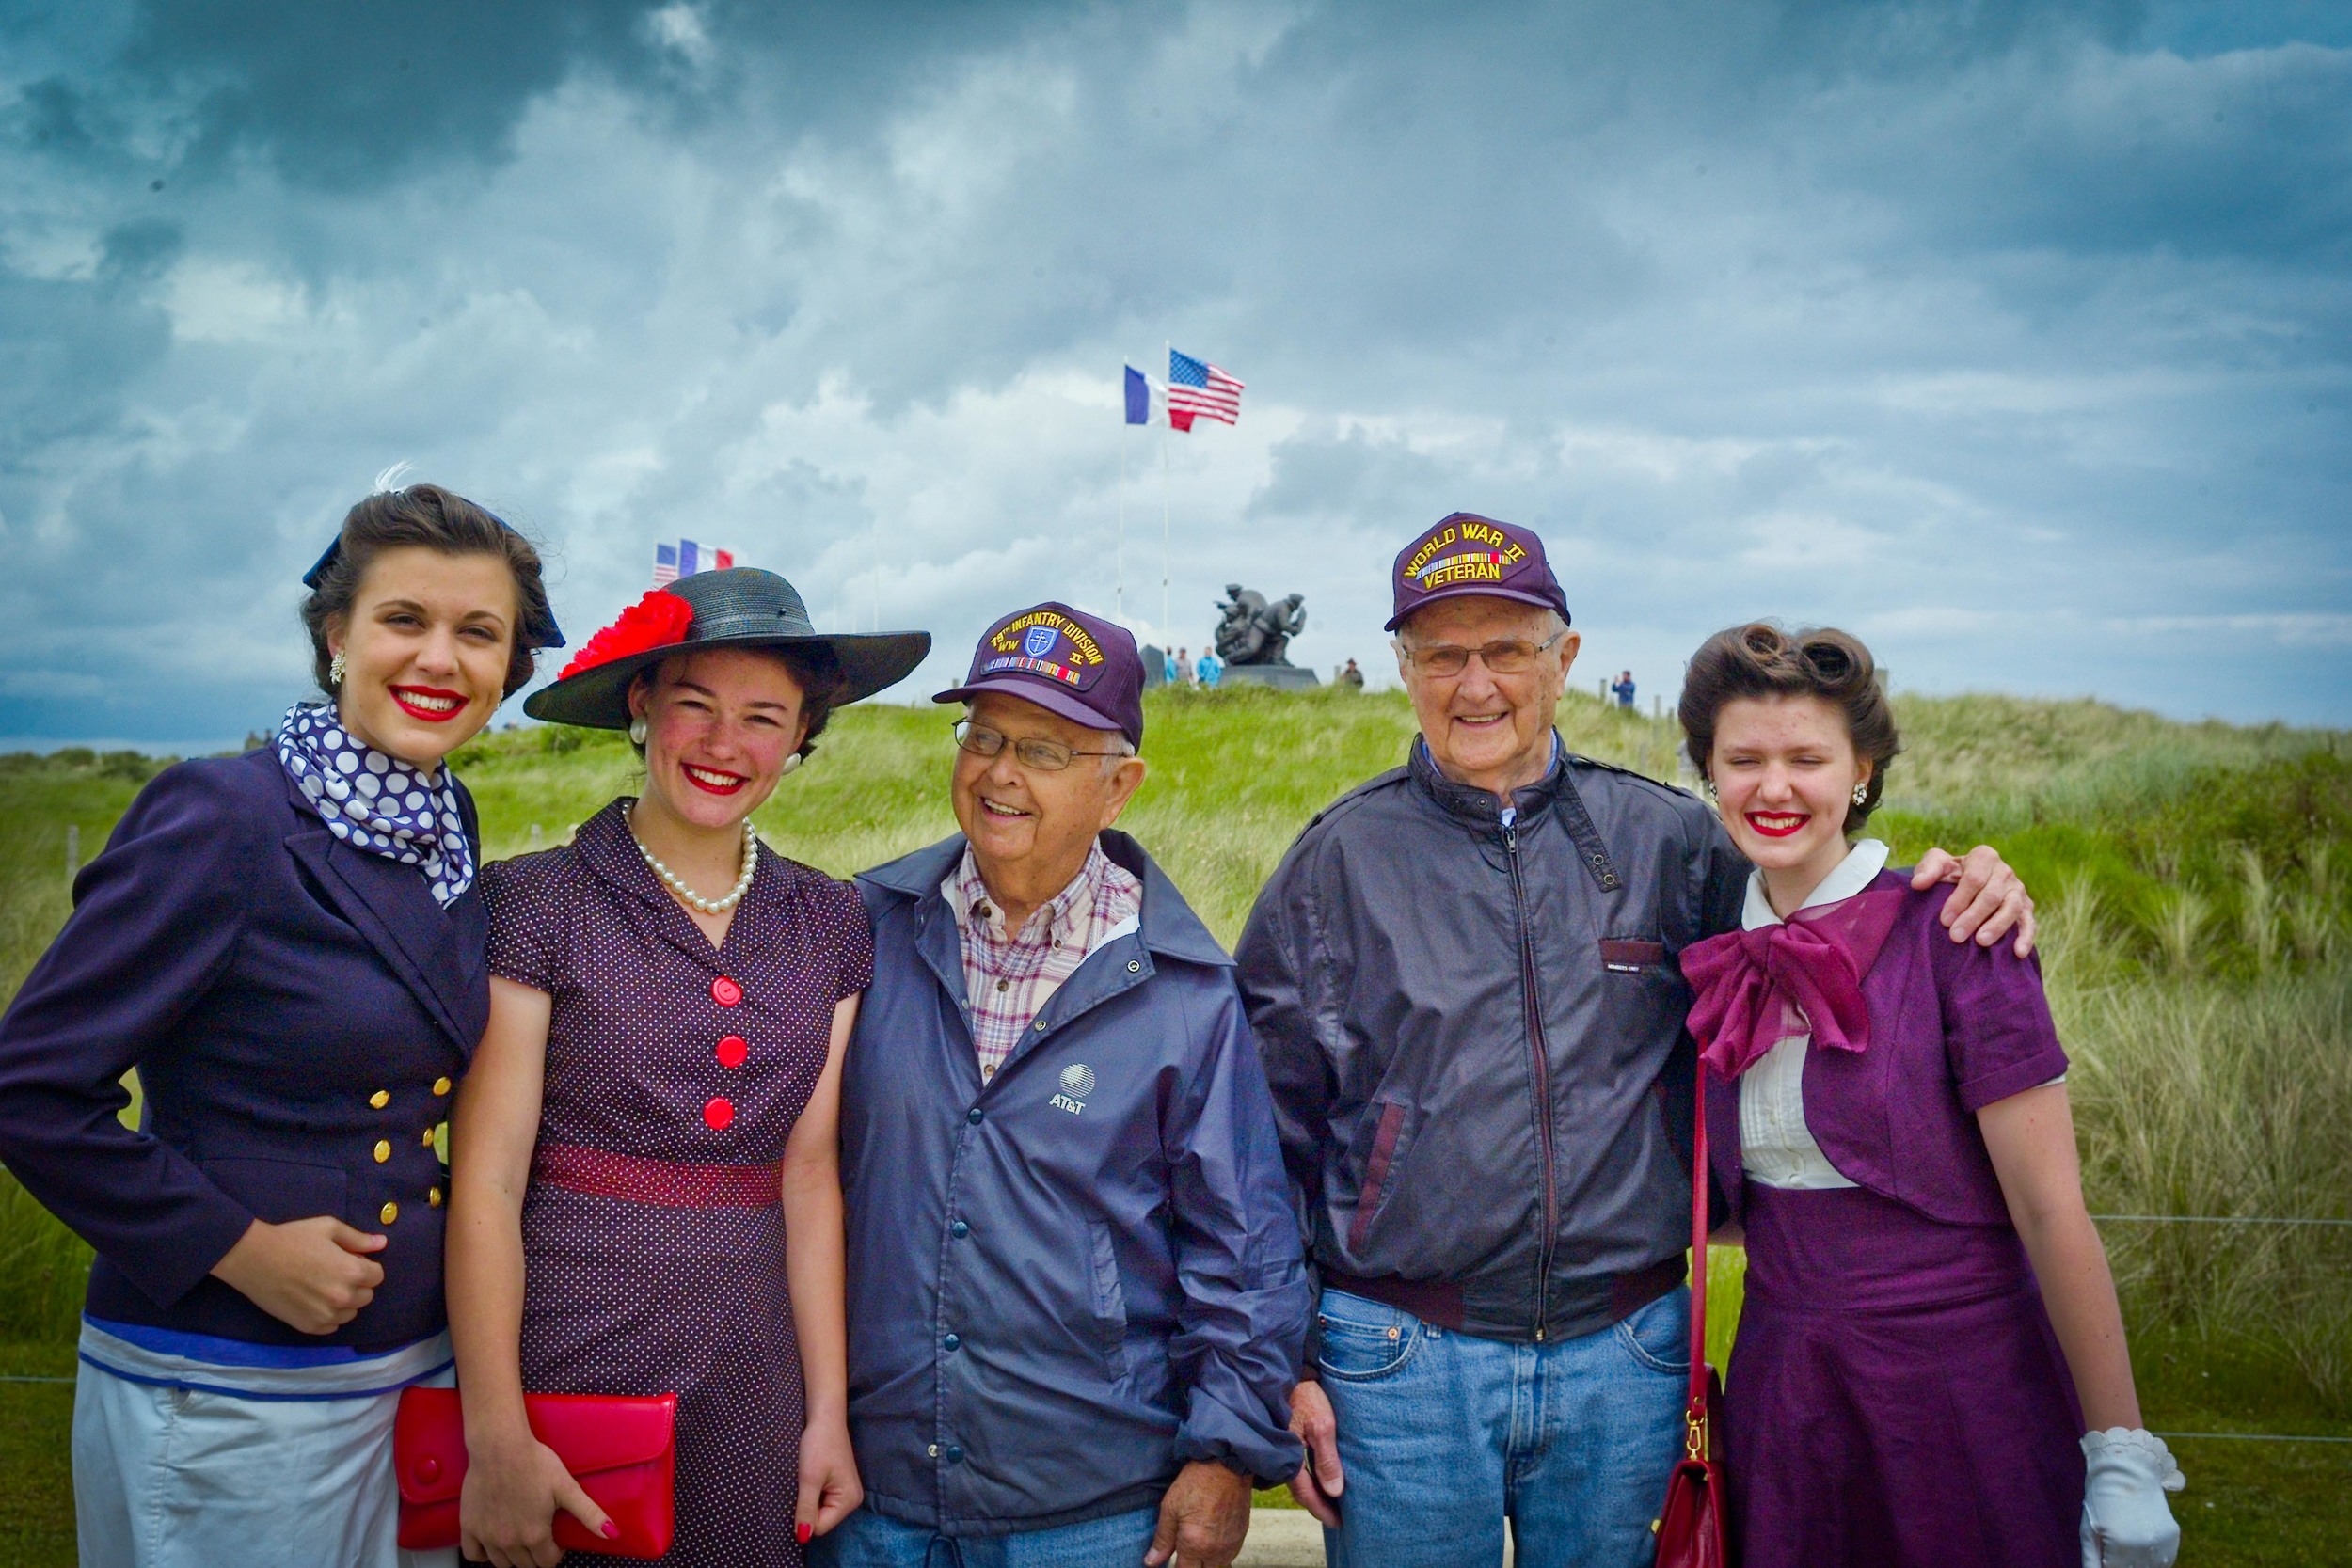 Right to left: Liberty Phillips, Jubilee Phillips, Herb Griffin, Ed Griffin, and Faith Phillips